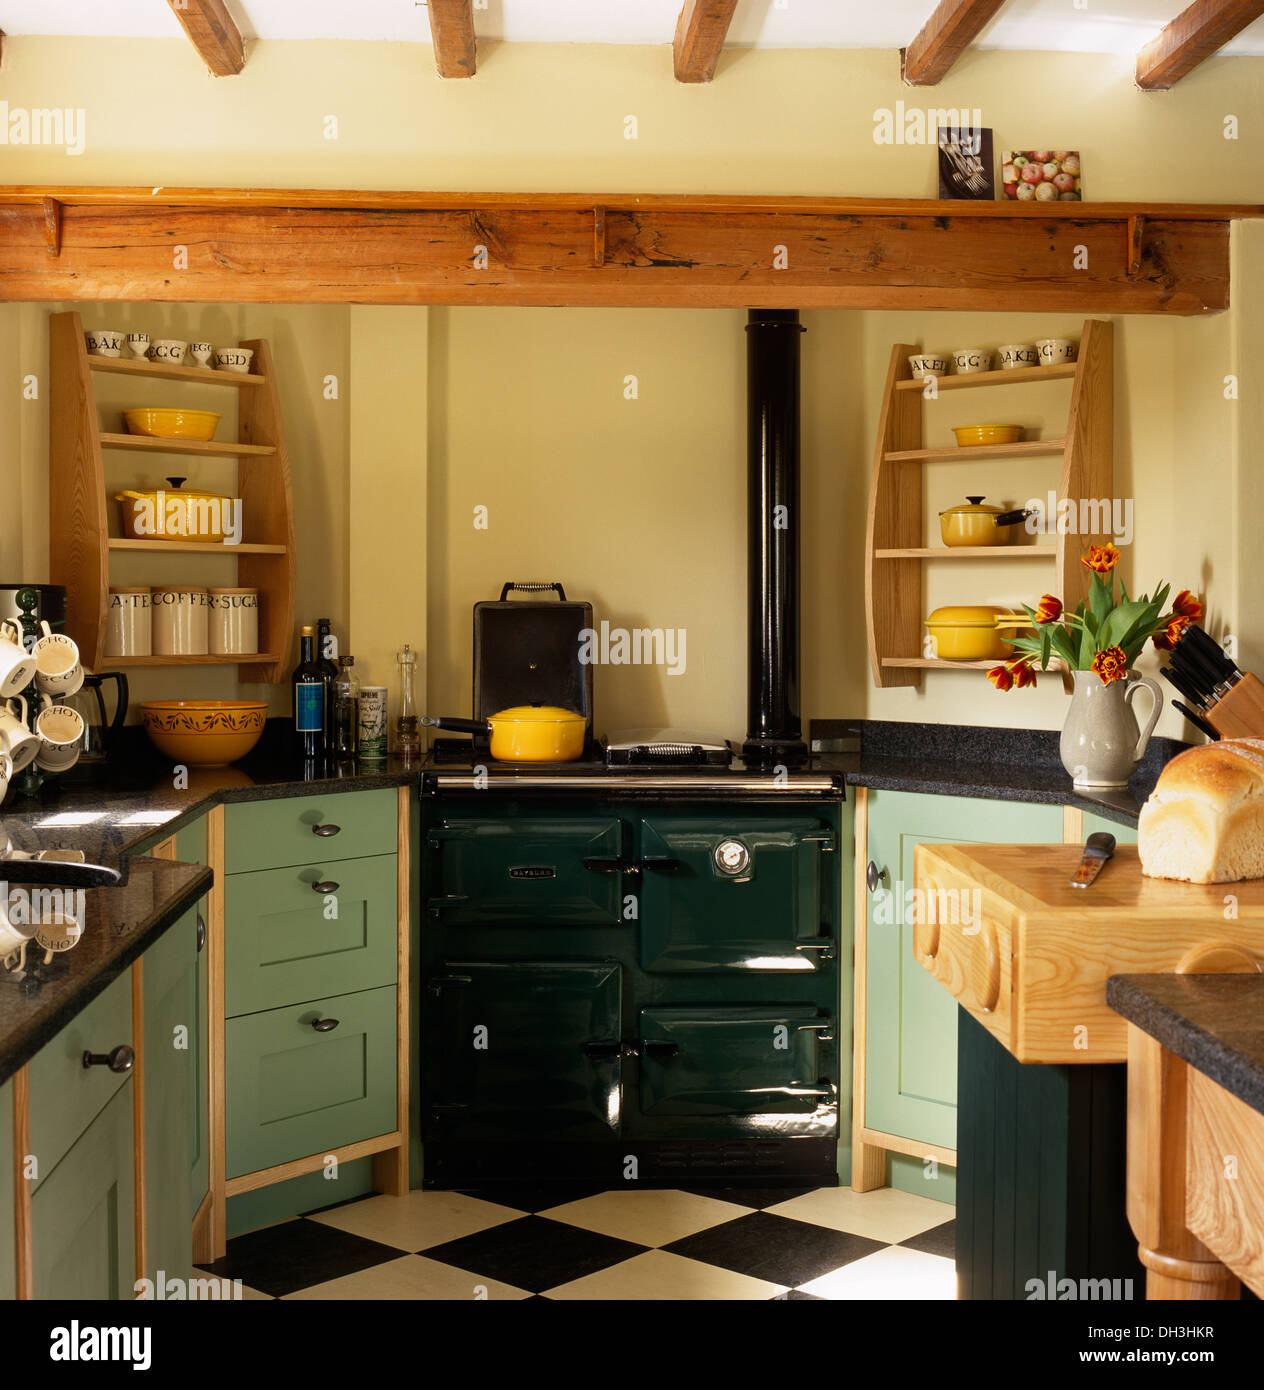 Dark Green Kitchen: Dark Green Range Oven Set Between Pale Green Fitted Units